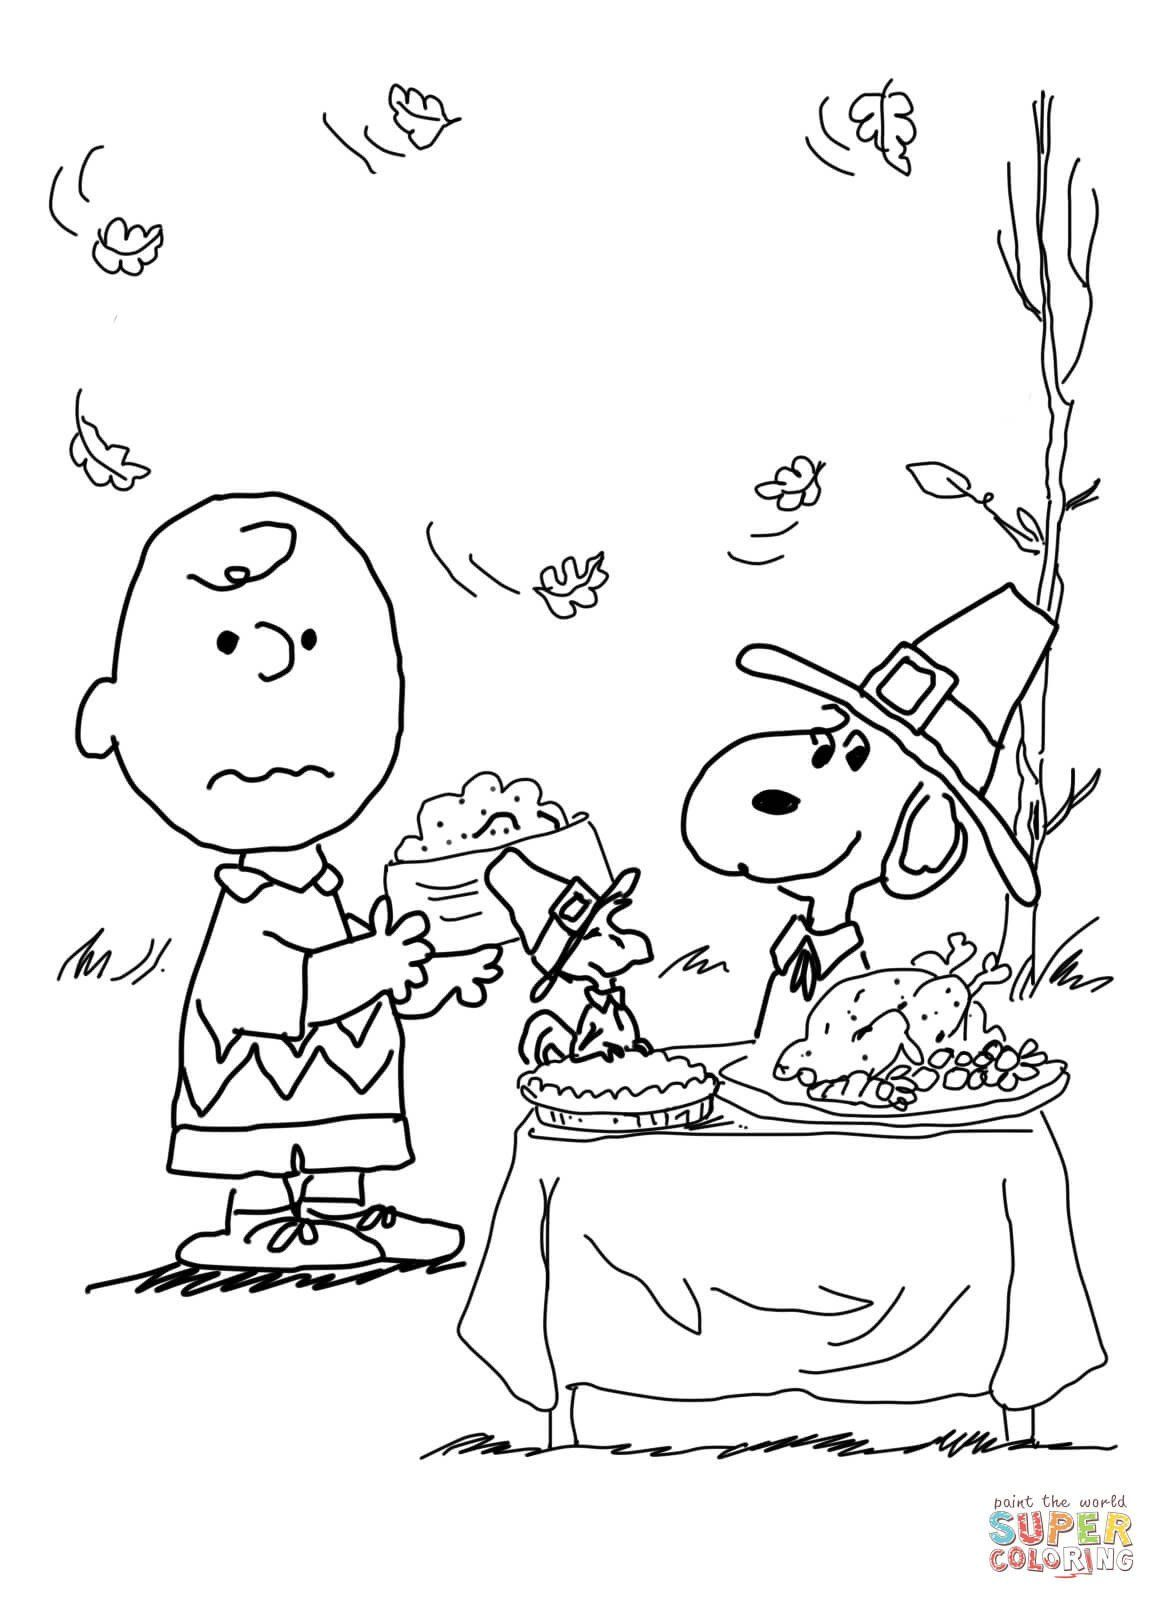 Free Thanksgiving Coloring Pages Charlie Brown Thanksgiving Coloring Page Snoopy Coloring Pages Halloween Coloring Pages Free Thanksgiving Coloring Pages [ 1600 x 1157 Pixel ]